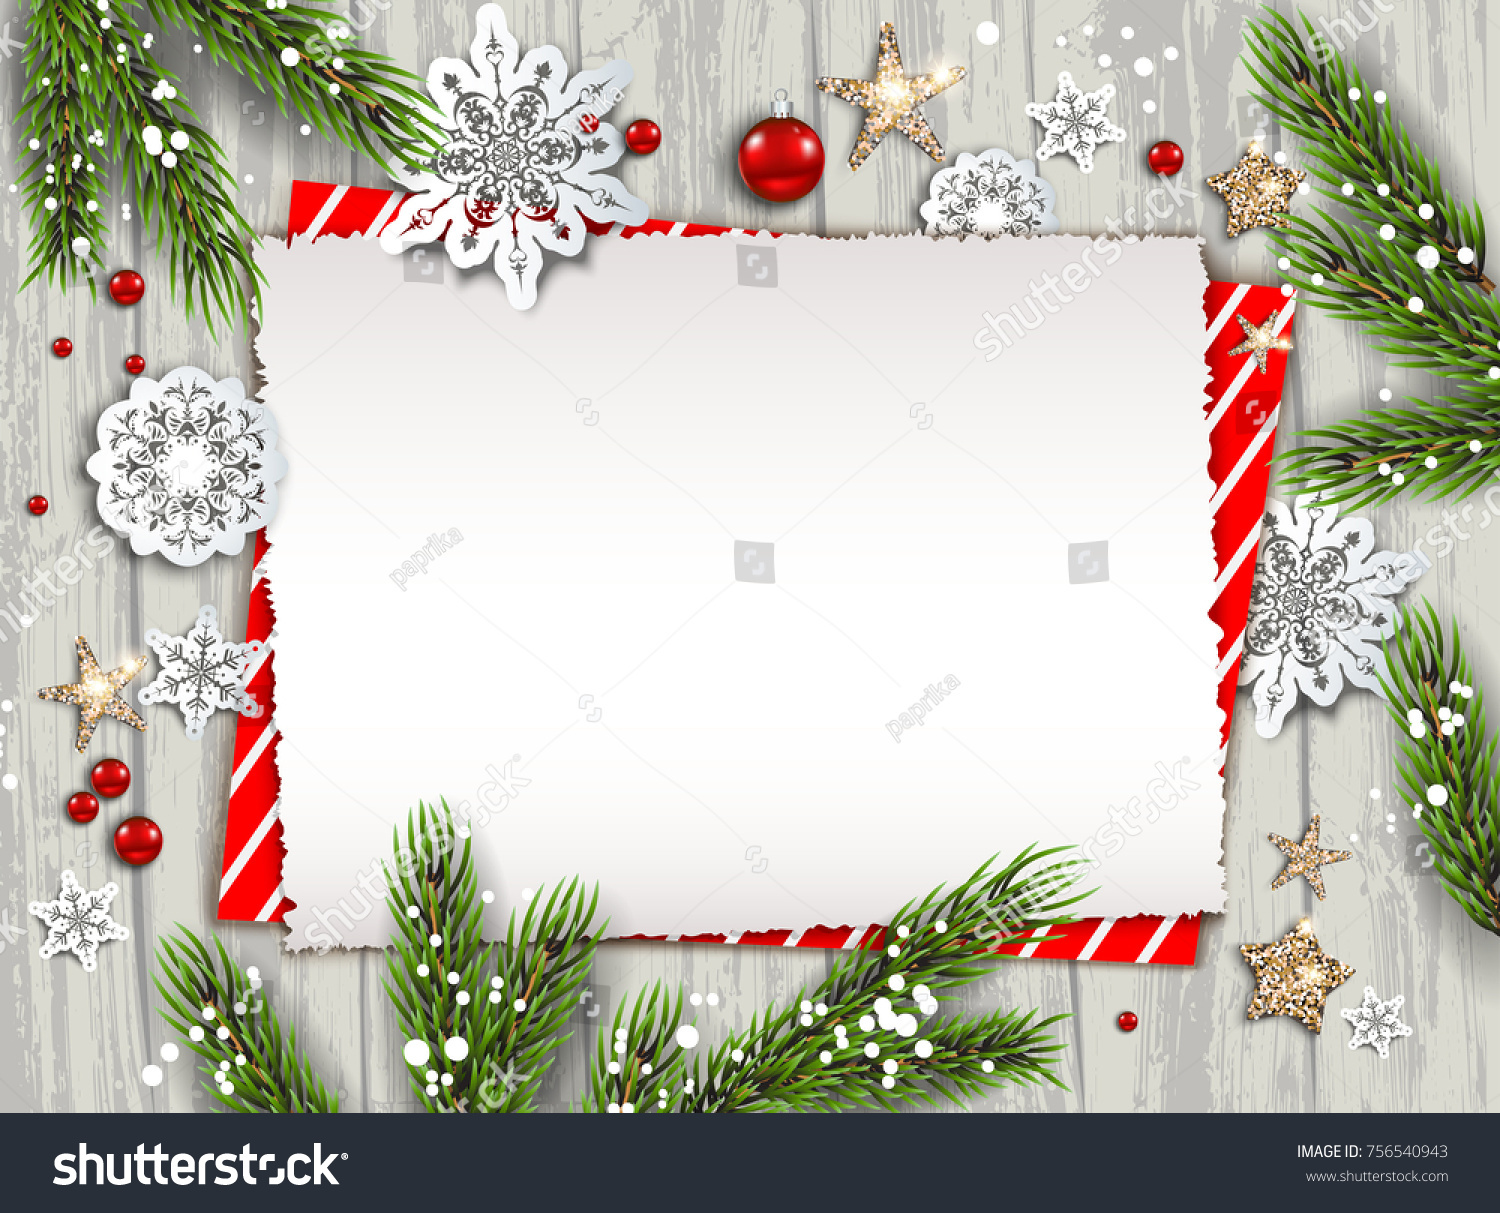 holiday christmas card with fir tree and festive decorations balls stars snowflakes on wood - Holiday Christmas Cards